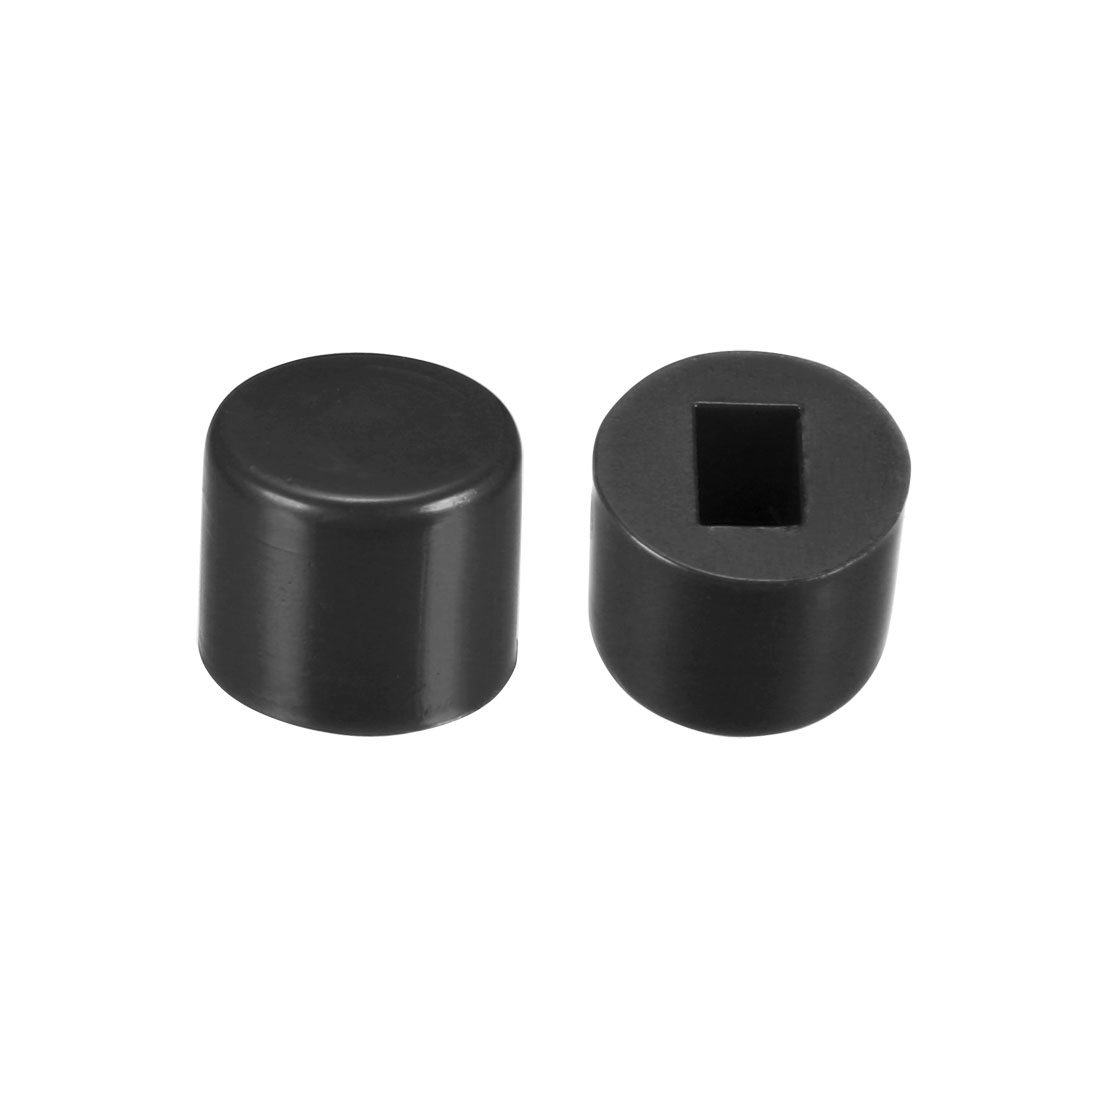 40Pcs Plastic 6x5mm Latching Pushbutton Tactile Switch Caps Cover Keycaps Black